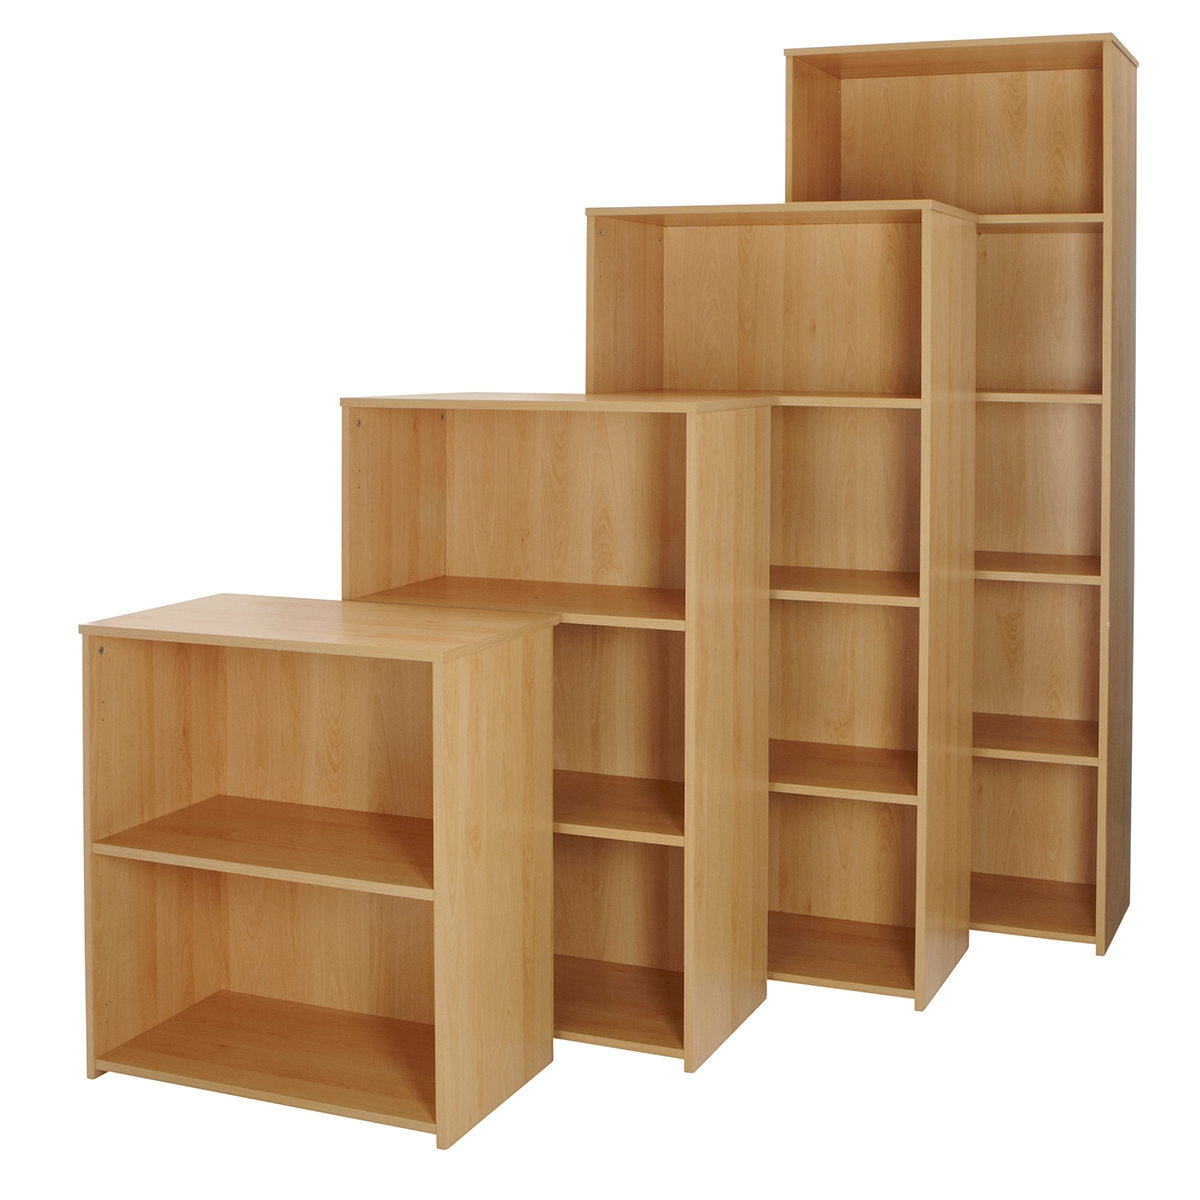 Wooden Bookcases Uk Kashiori Wooden Sofa Chair Bookshelves Throughout Beech Bookcases (#15 of 15)